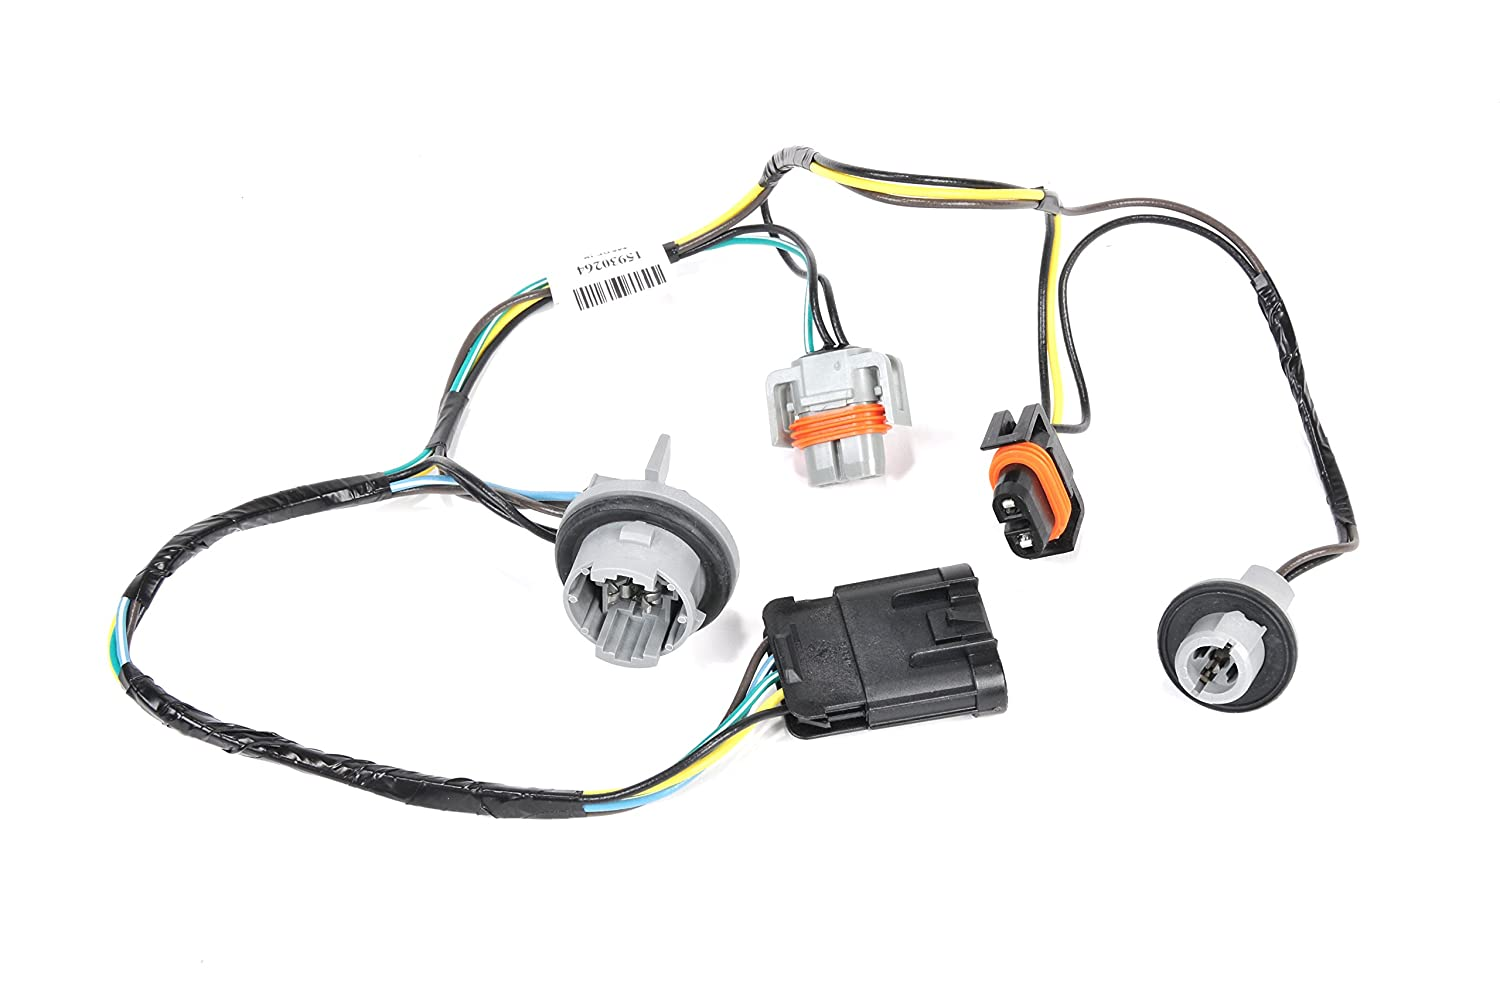 Phenomenal Amazon Com Acdelco 15930264 Gm Original Equipment Headlight Wiring Wiring Digital Resources Indicompassionincorg